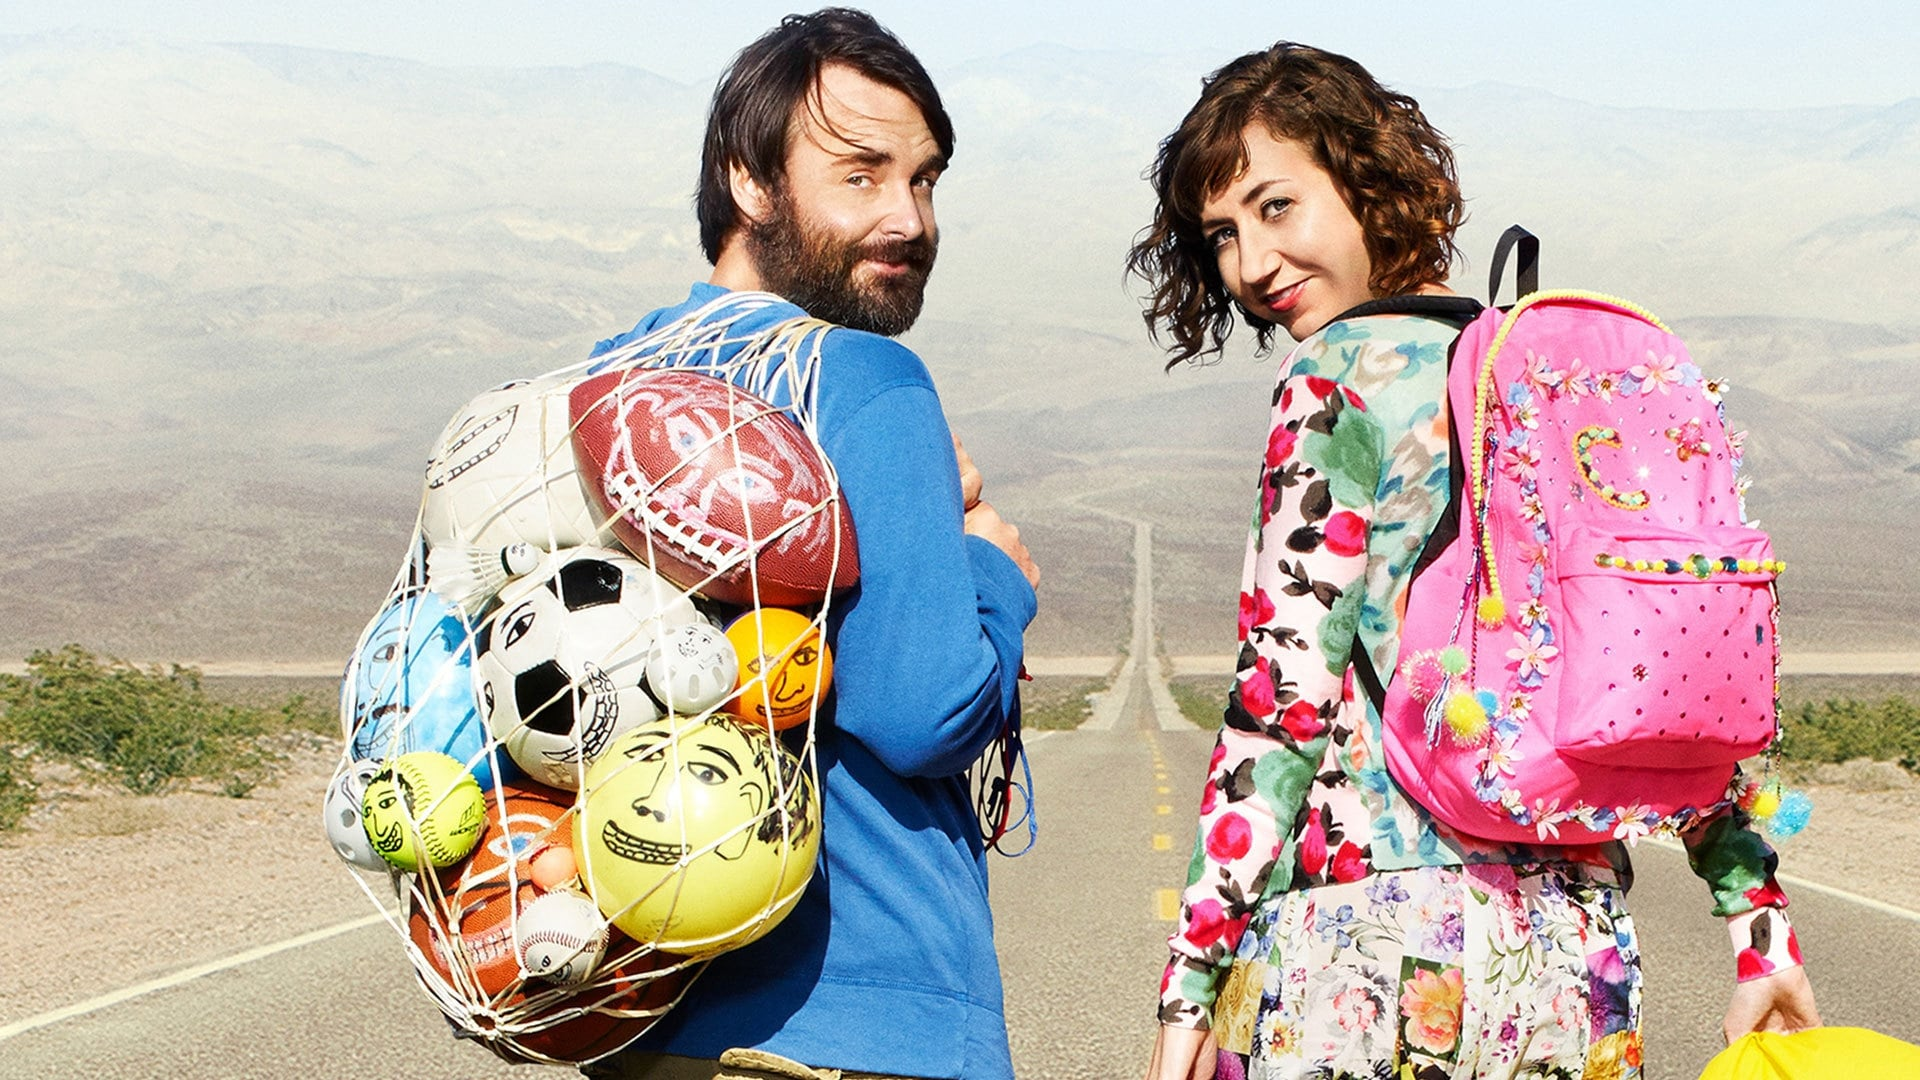 Imagens do The Last Man on Earth Dublado  Online